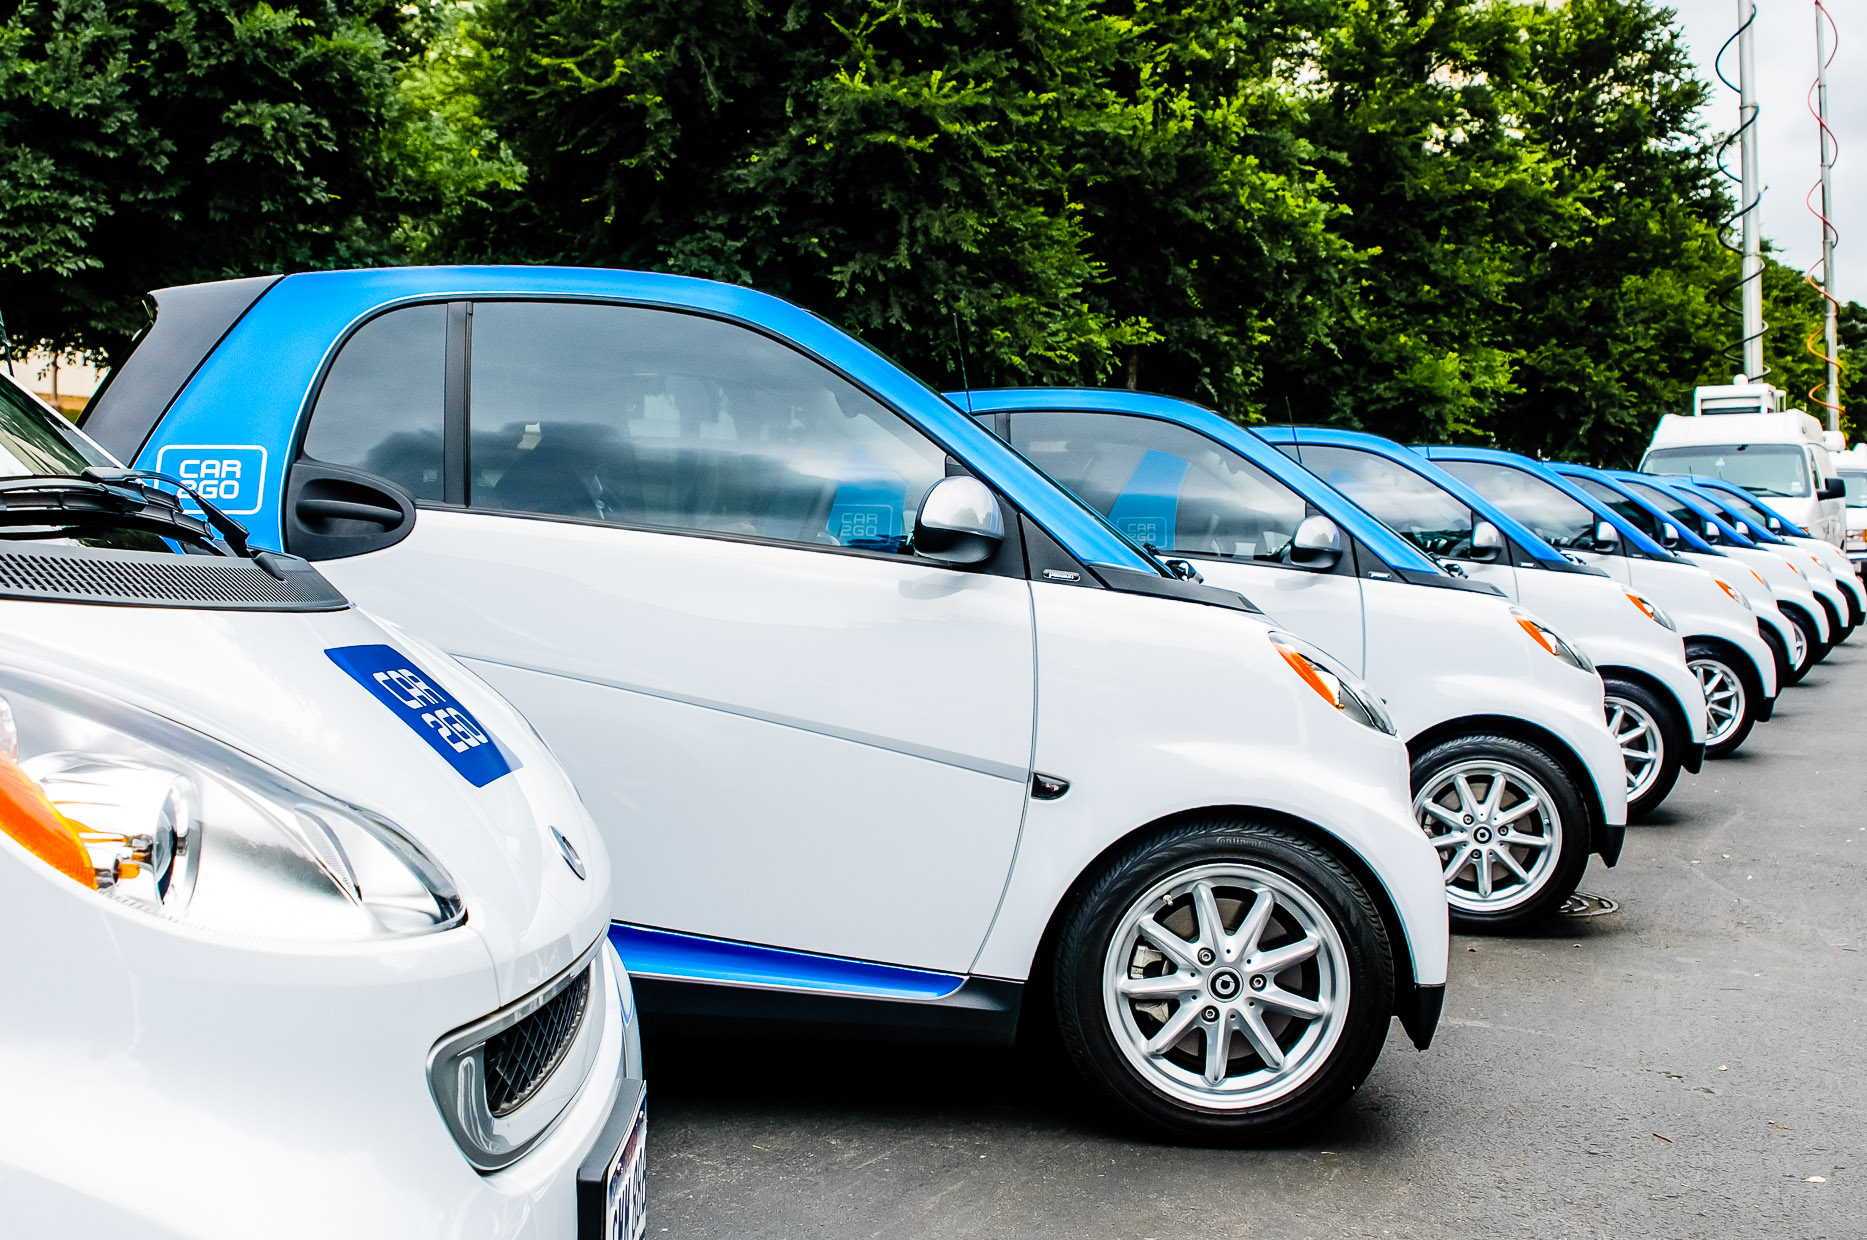 Car2go-Fleet-Cars-Event-Photography-Austin-Texas.jpg